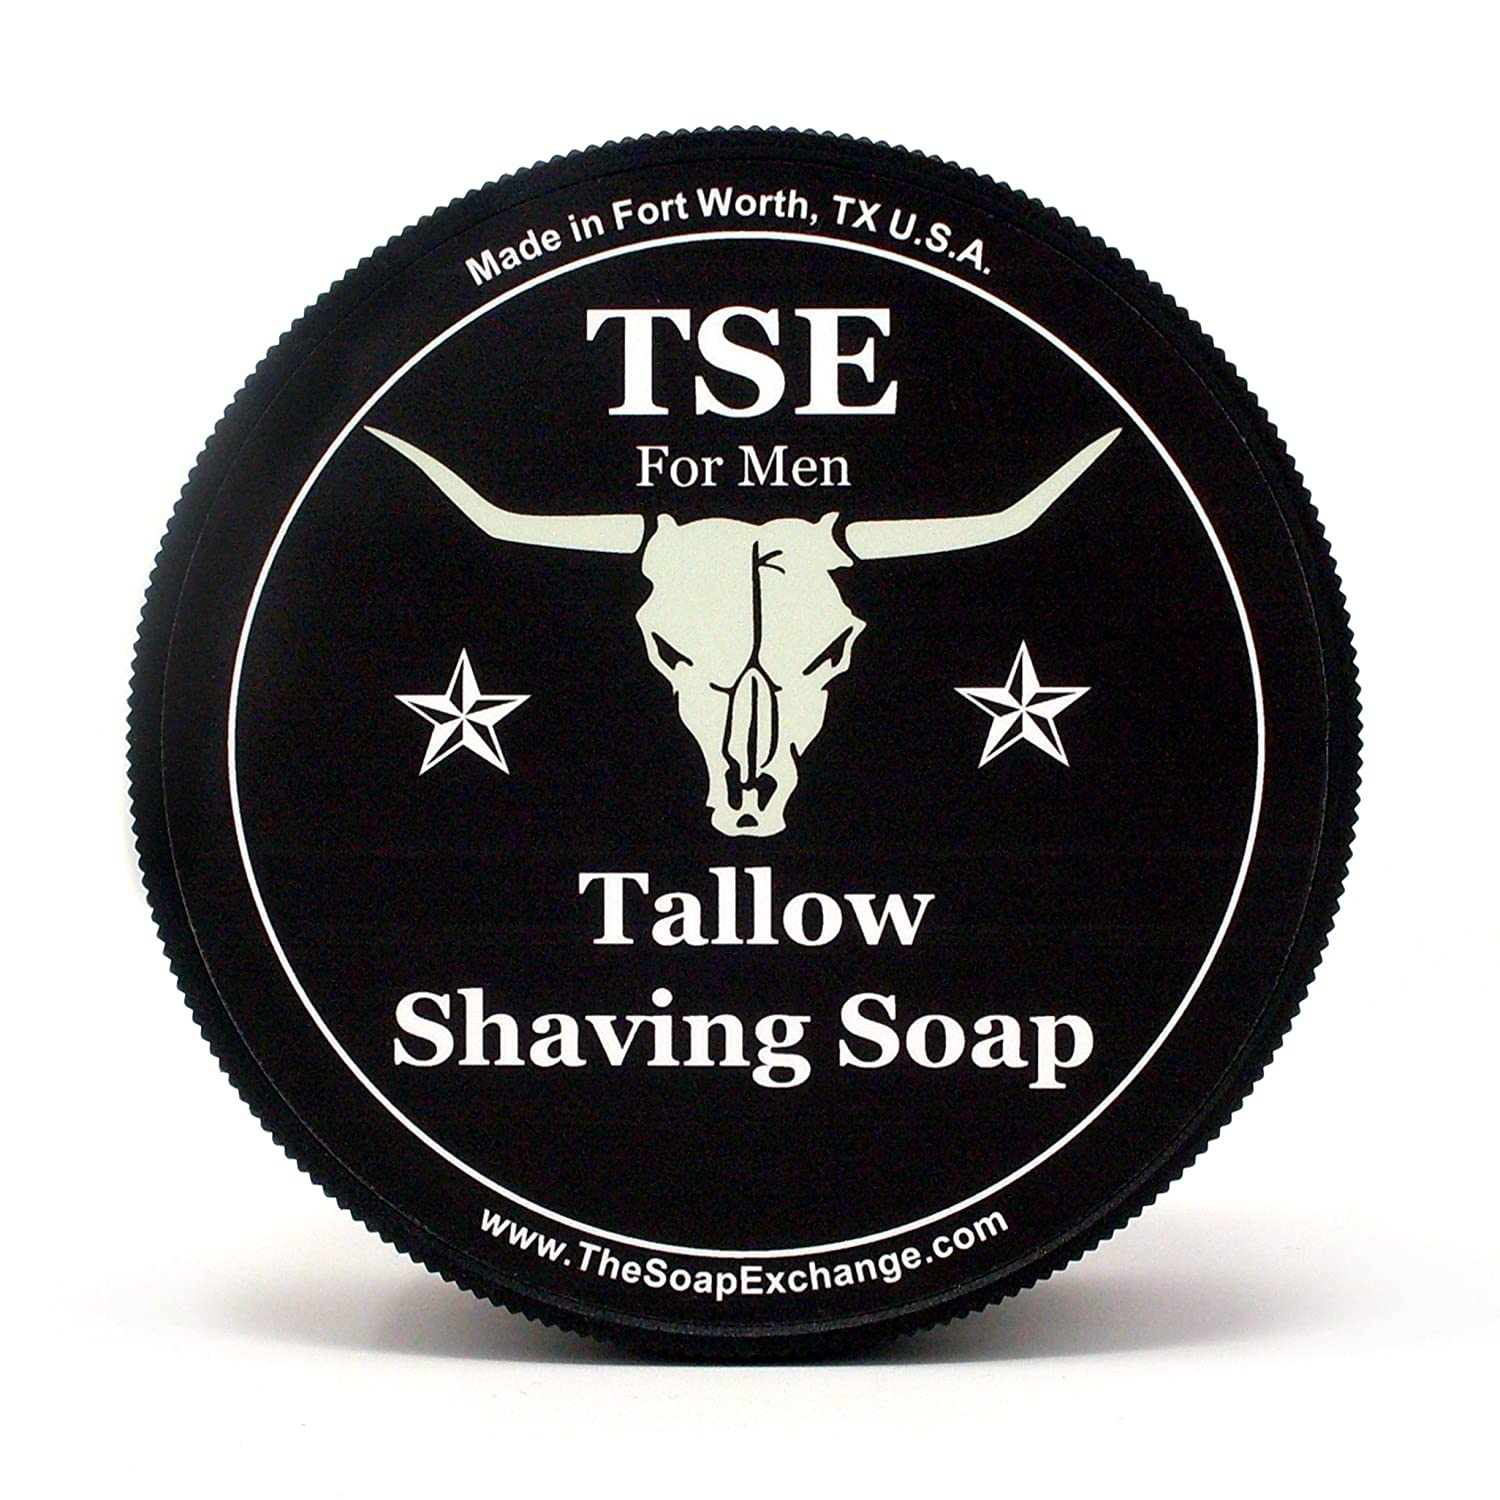 TSE for Men Cherry Bomb Shaving Soap with Tallow and Shea Butter. Natural Ingredients for Rich Lather and a Smooth Comfortable Shave. Artisan 4.5 oz Semi-Soft Italian Style. Made in the USA. The Soap Exchange